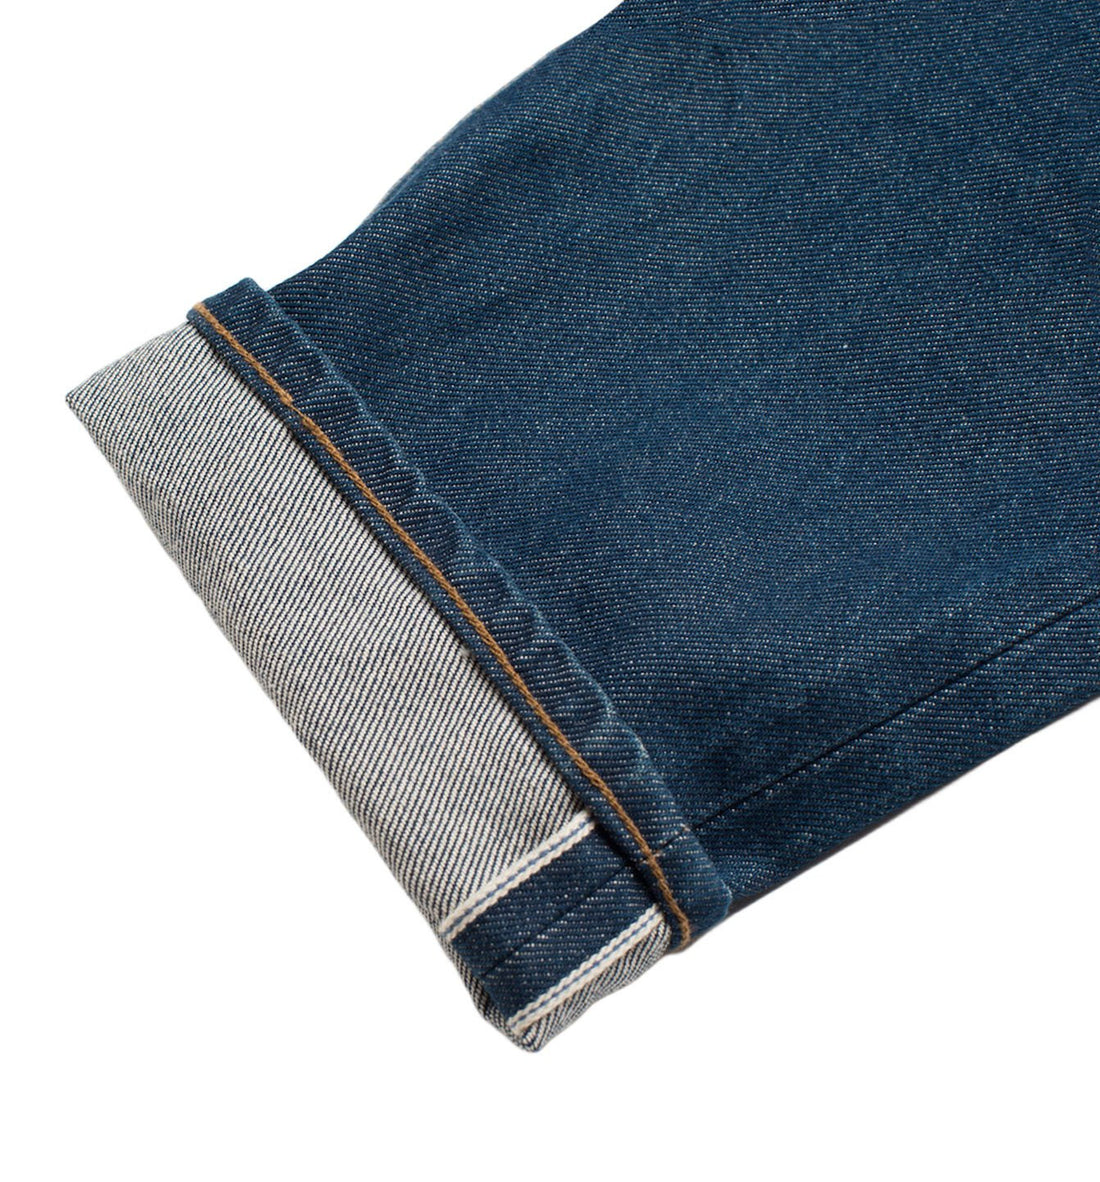 Freenote Rios Denim